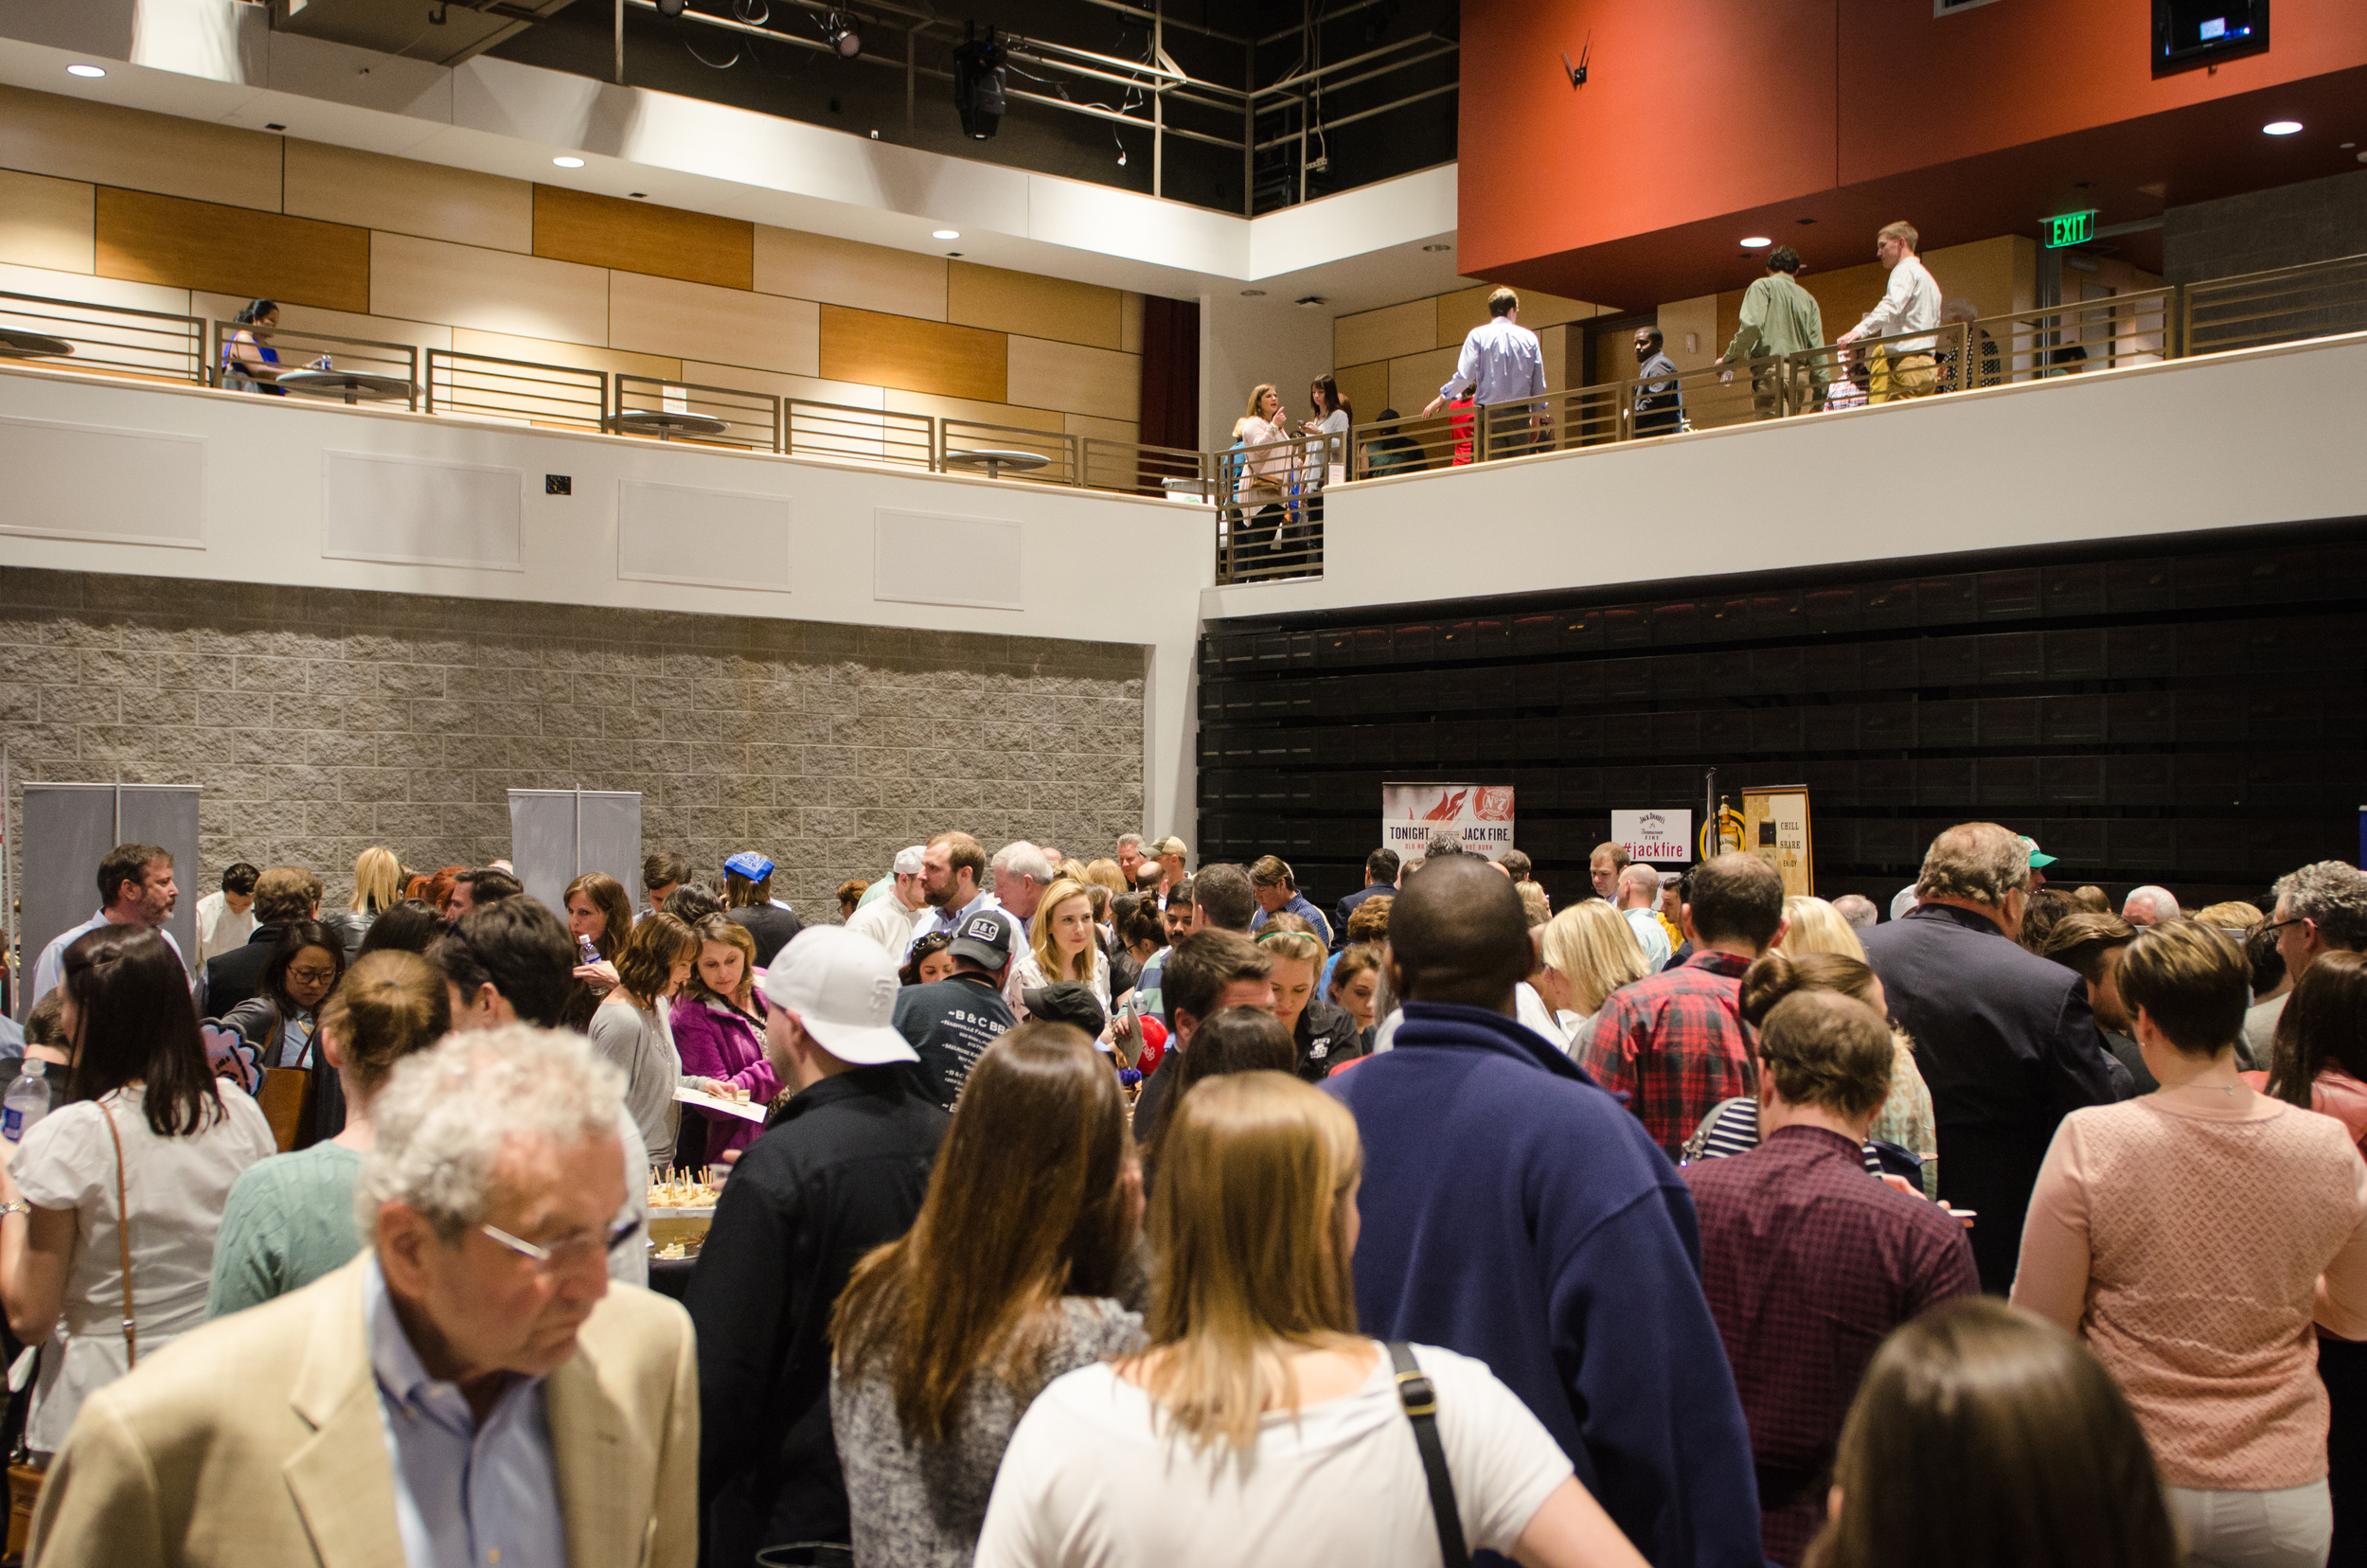 Hundreds of guests explored one of the rooms, trying not to miss any table at Tennessee Flavors